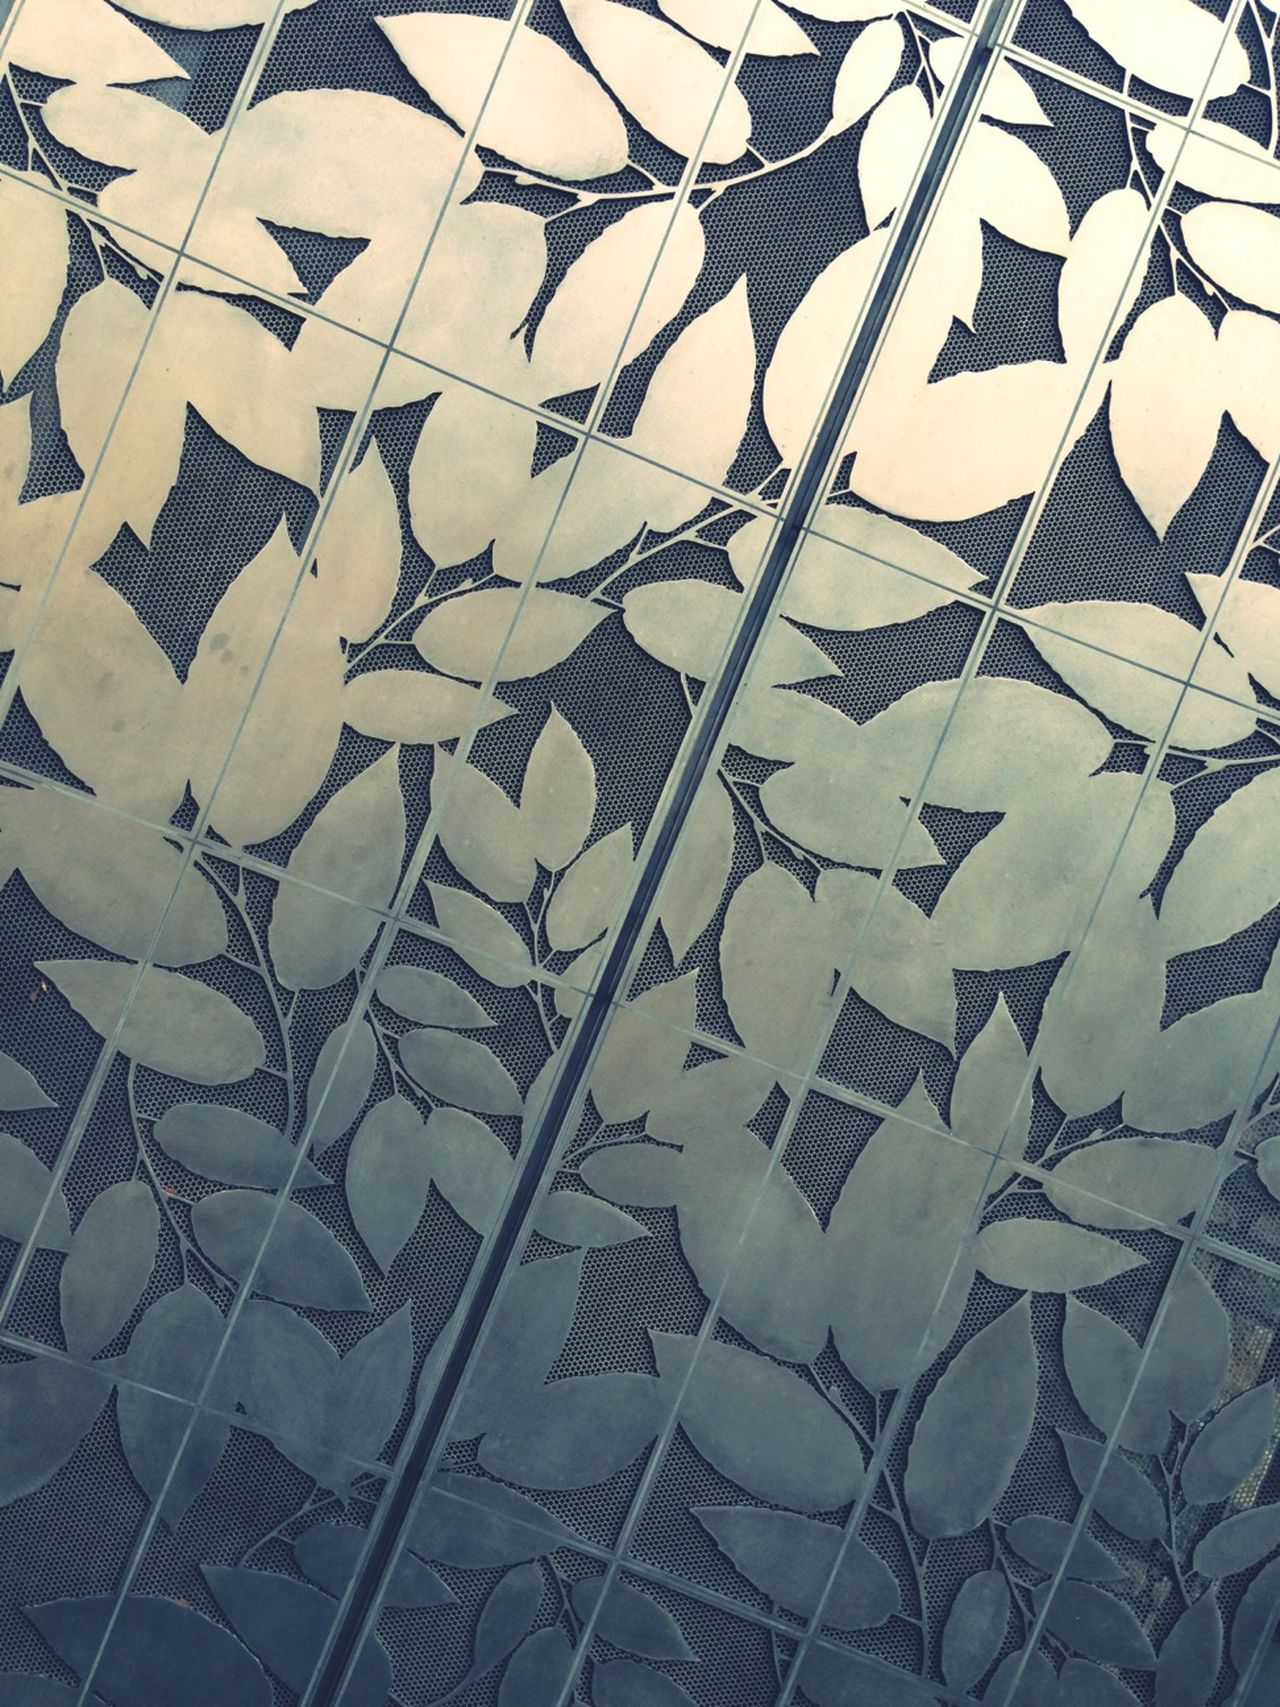 Pattern Leafs Metal Textures And Surfaces Surface Metal Art